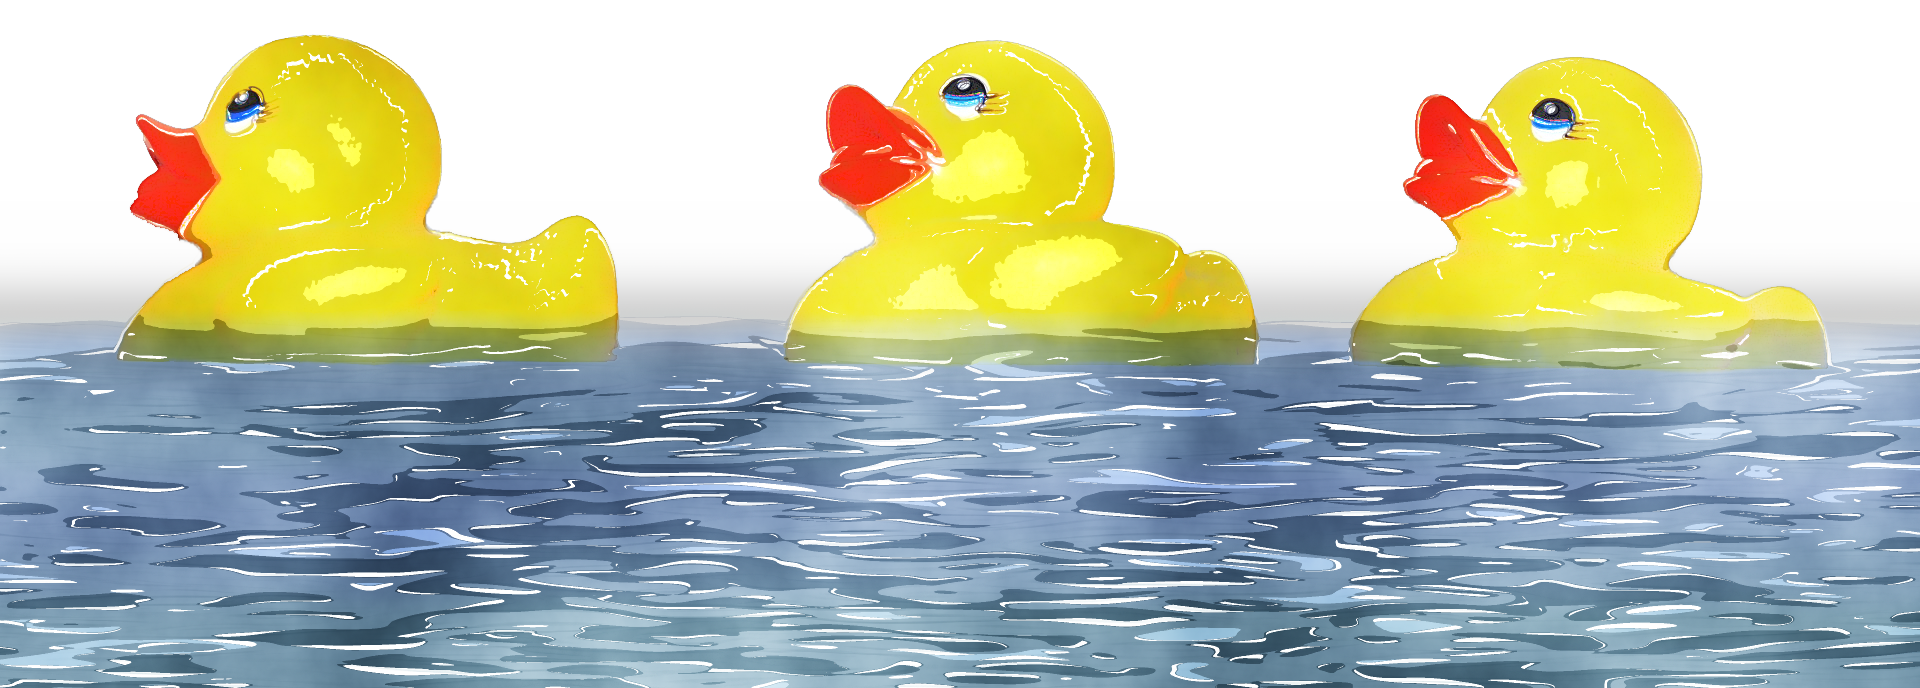 Ducks clipart blue. Watercolour by lavandalu on